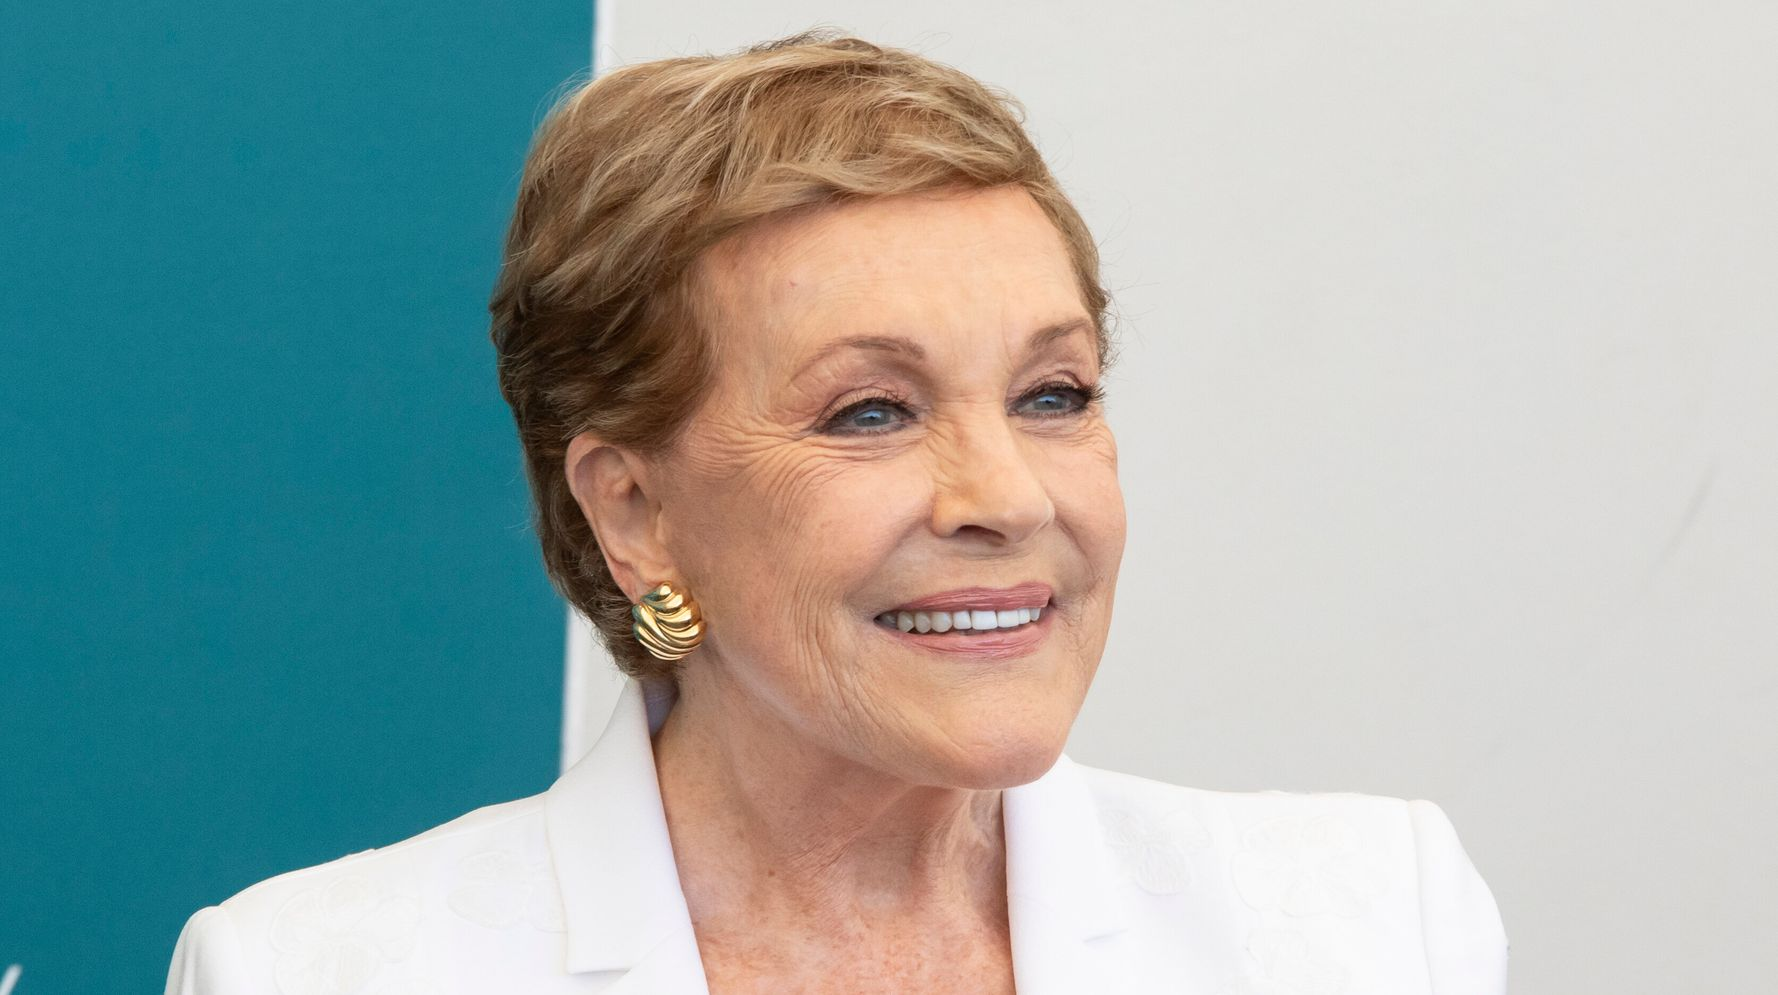 Westlake Legal Group 5db09ac1200000bf22506954 Julie Andrews Praises Going To Therapy: 'It Saved My Life In A Way'